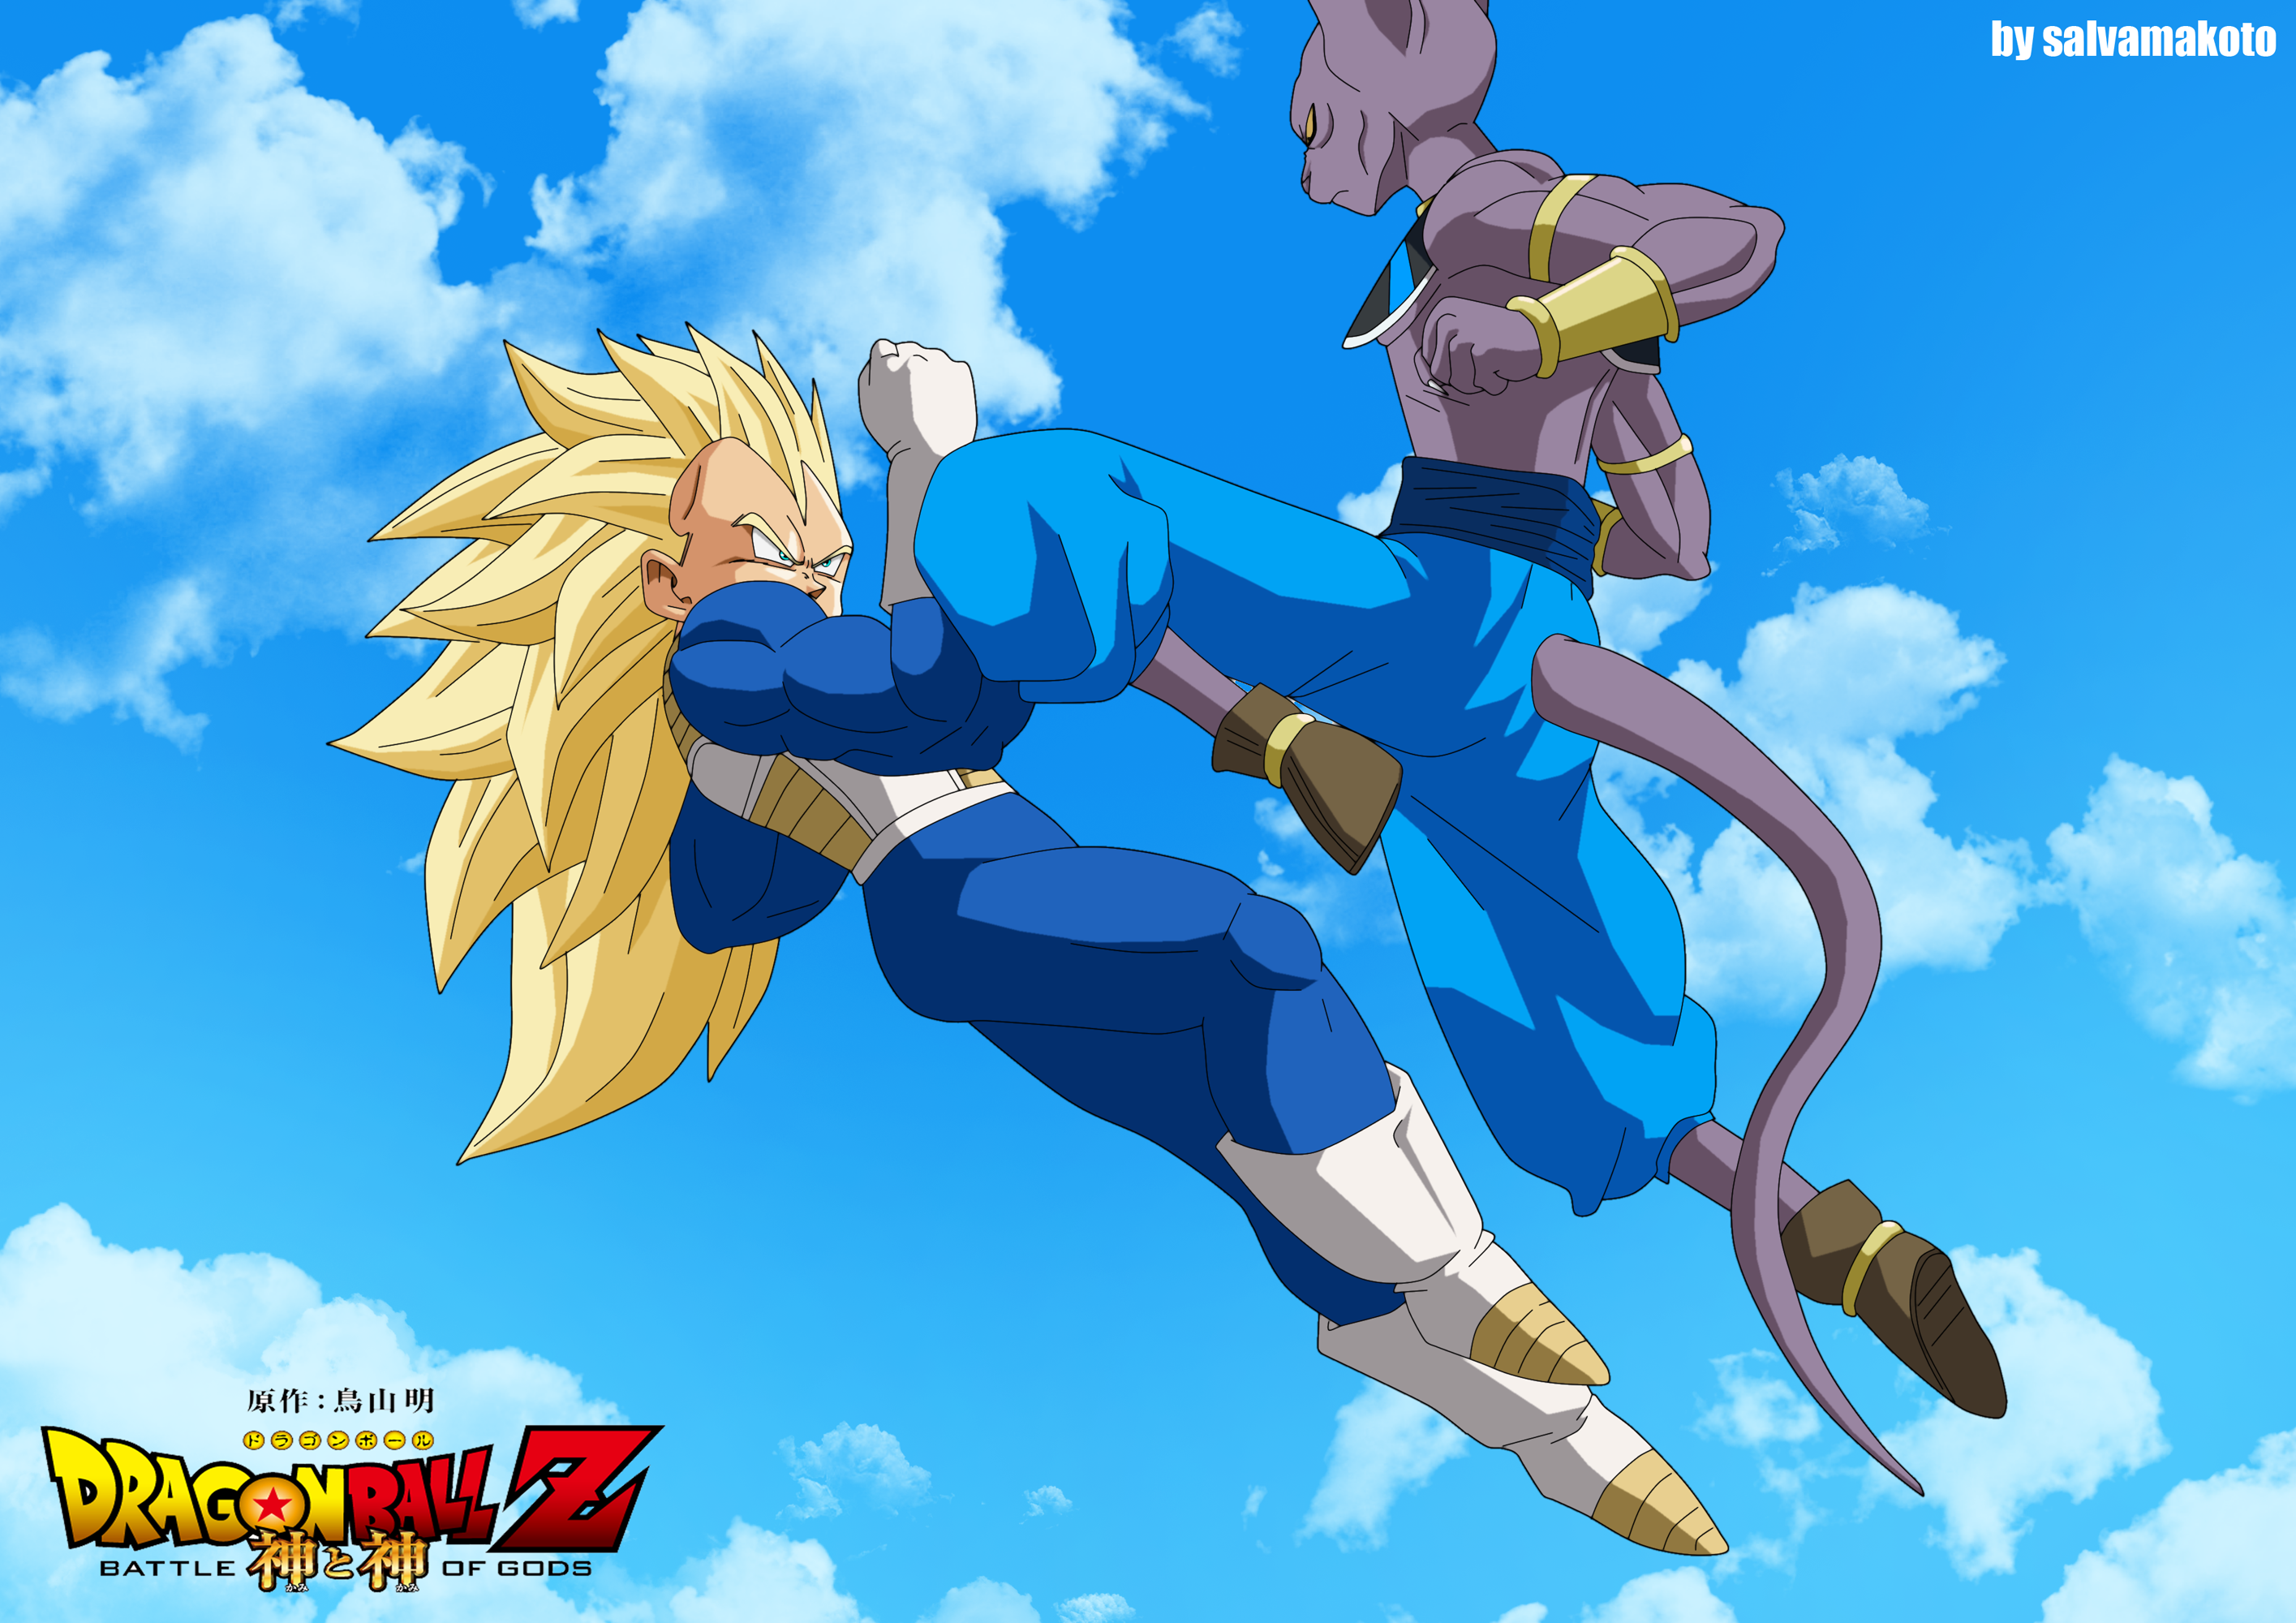 Hd wallpaper vegeta - Dragon Ball Z Images Vageta V S Bills Hd Wallpaper And